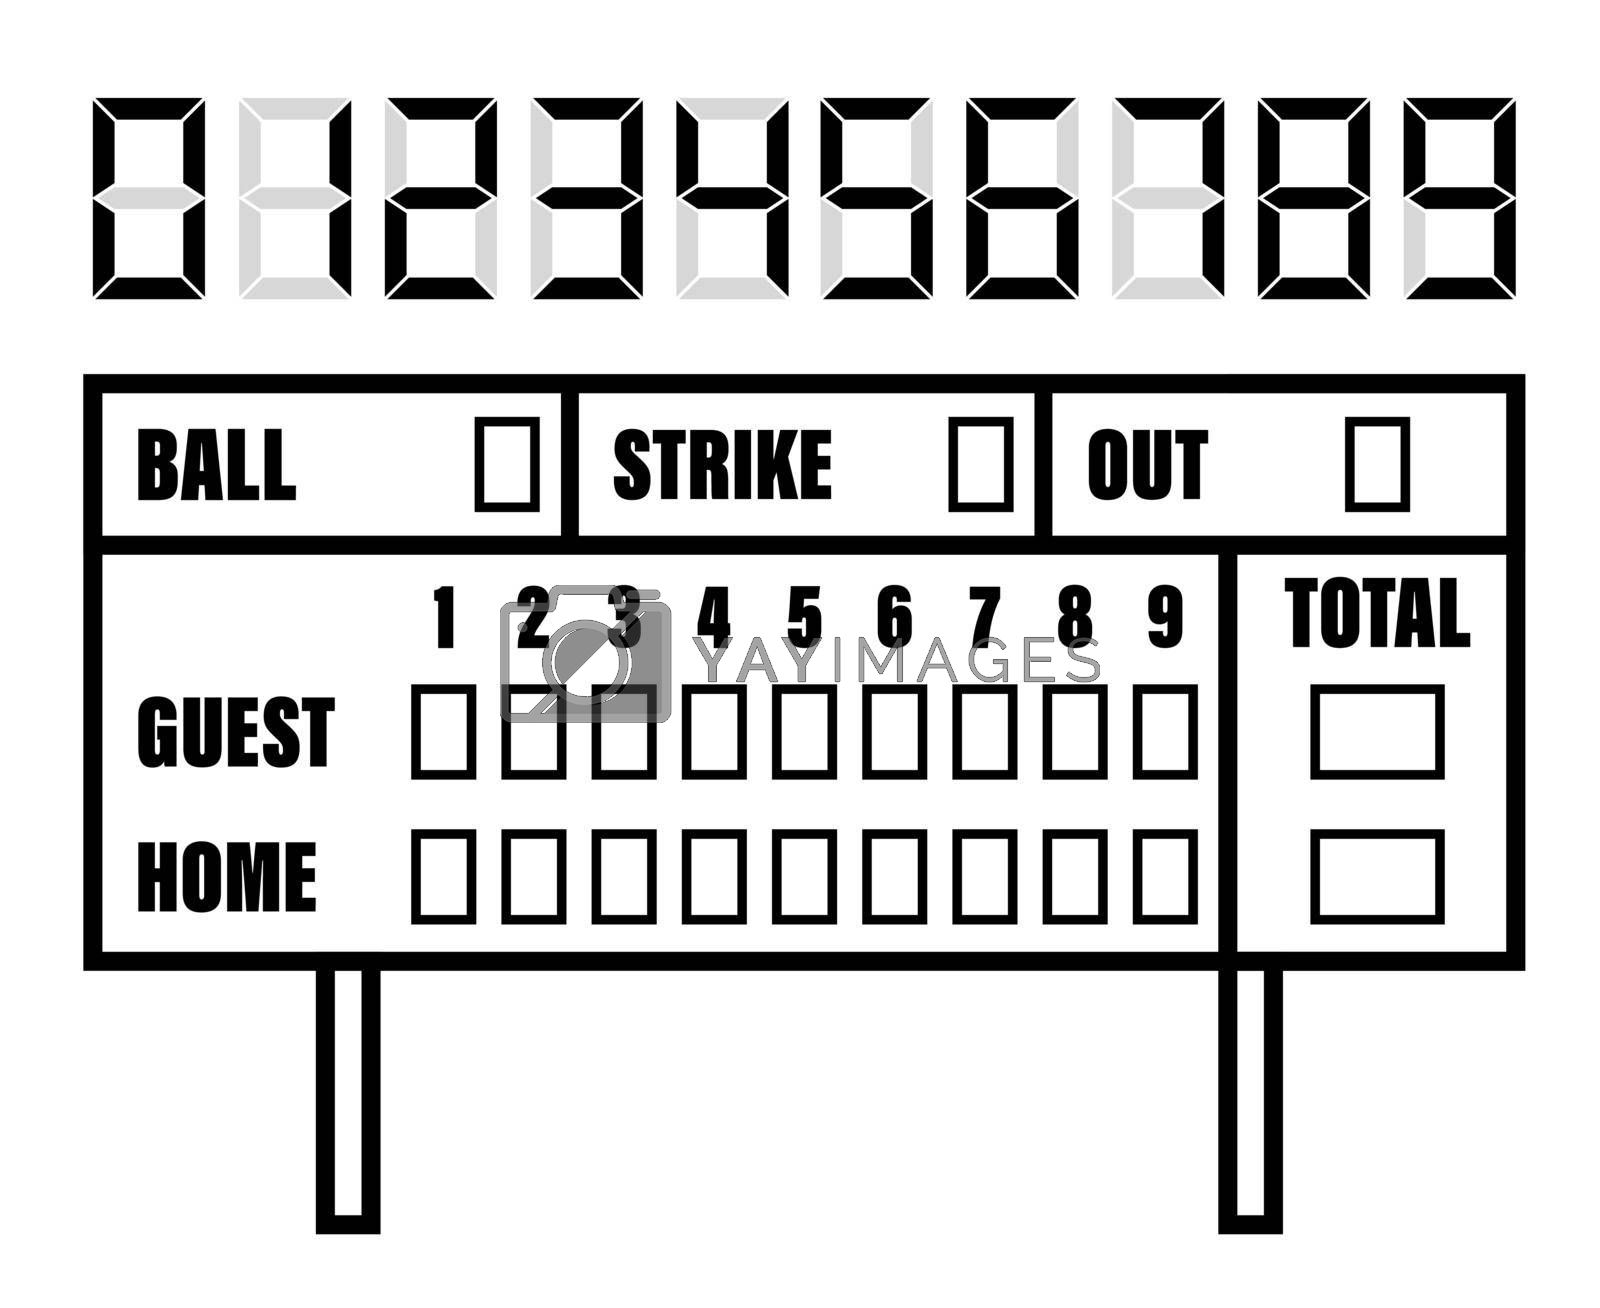 Royalty free image of baseball scoreboard. Score on board during match on field. Team sports. Active lifestyle. American national sport. Vector by RNko